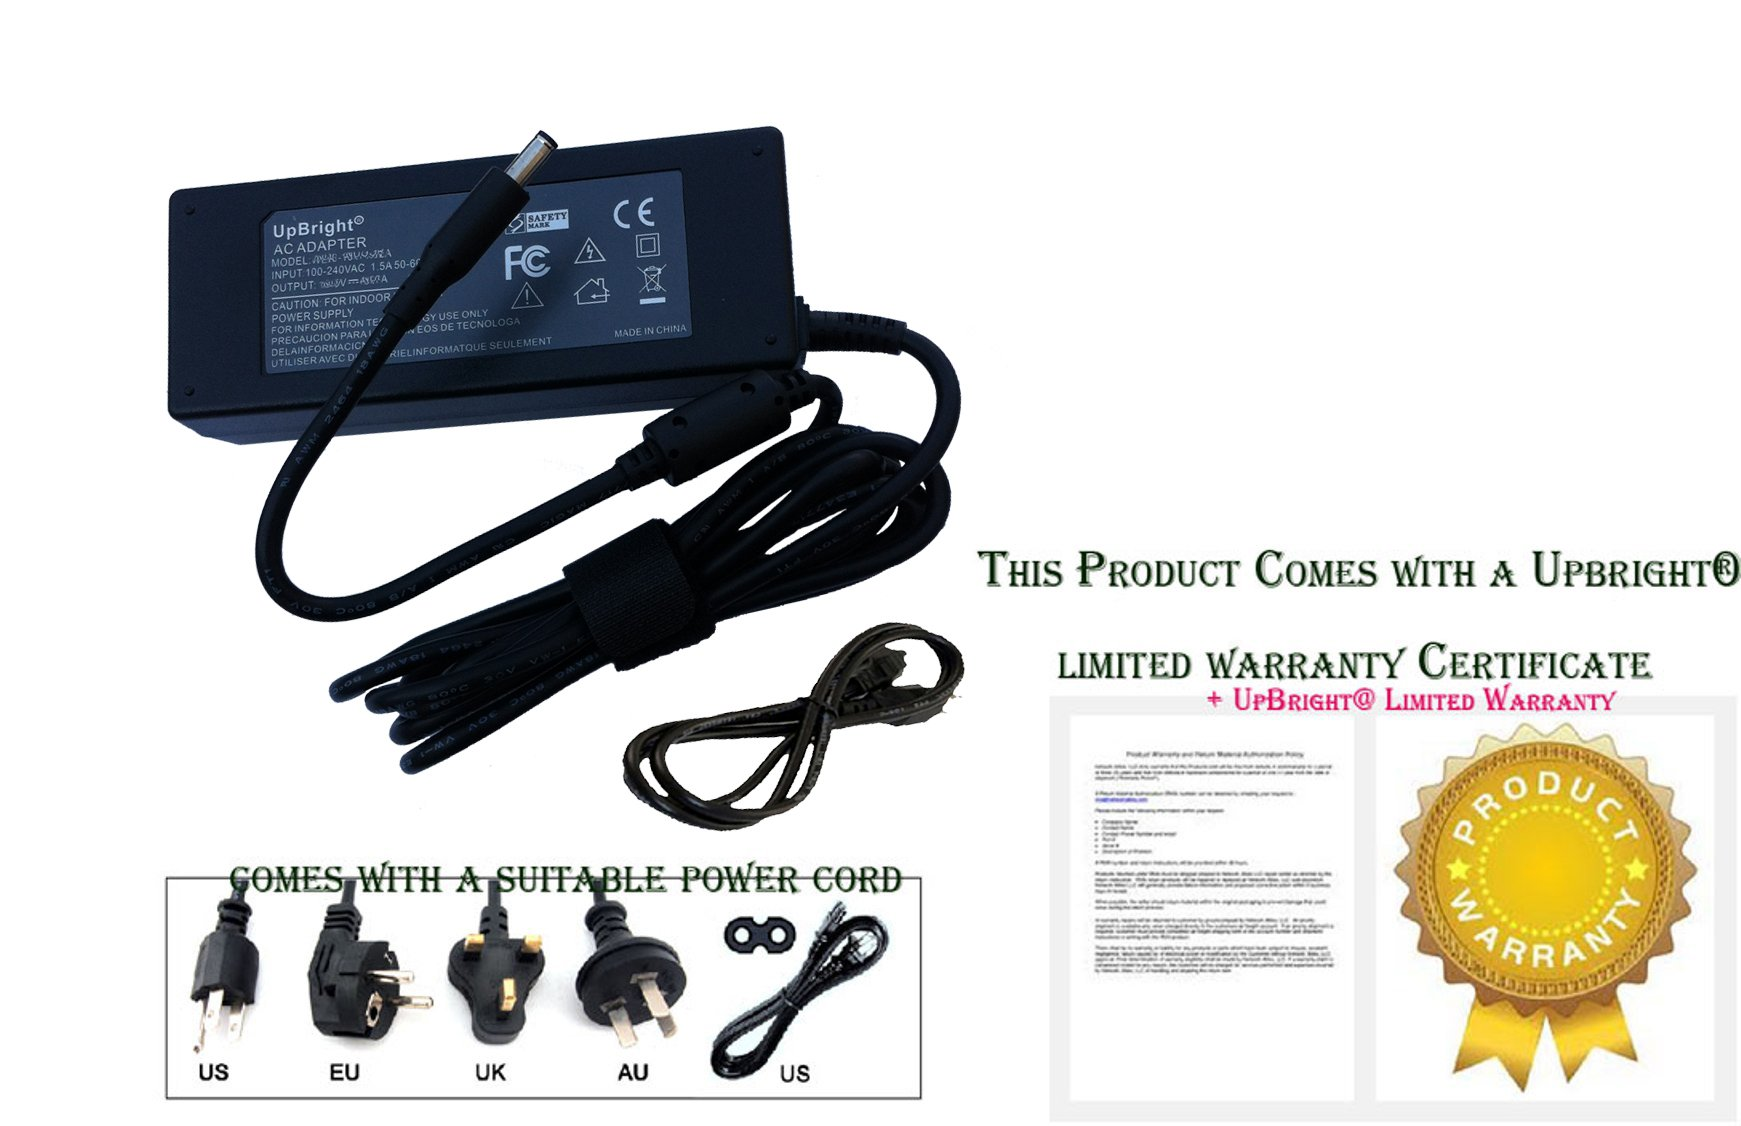 UpBright NEW Global AC / DC Adapter For Dell Inspiron 24 Model 7459 24-7459 W07C W07C003 3264 22-3264 Reg W17B Type W17B003 All-In-One Desktop PC Power Supply Cord Battery Charger Mains PSU